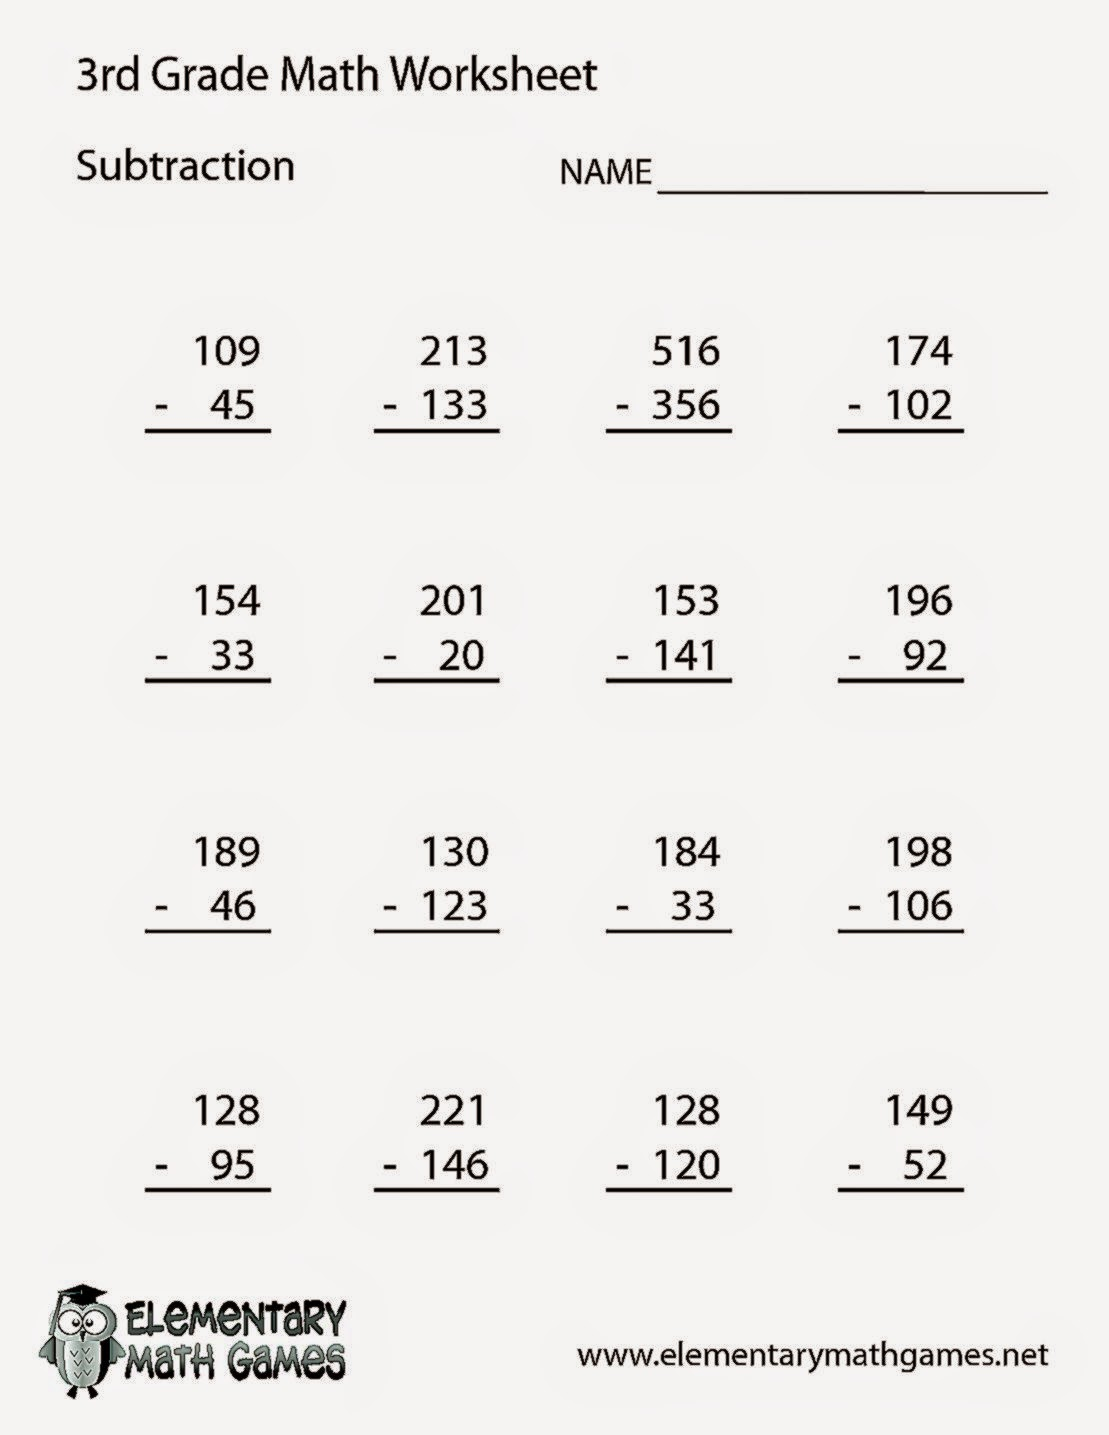 Subtraction Math Worksheet for Third Graders